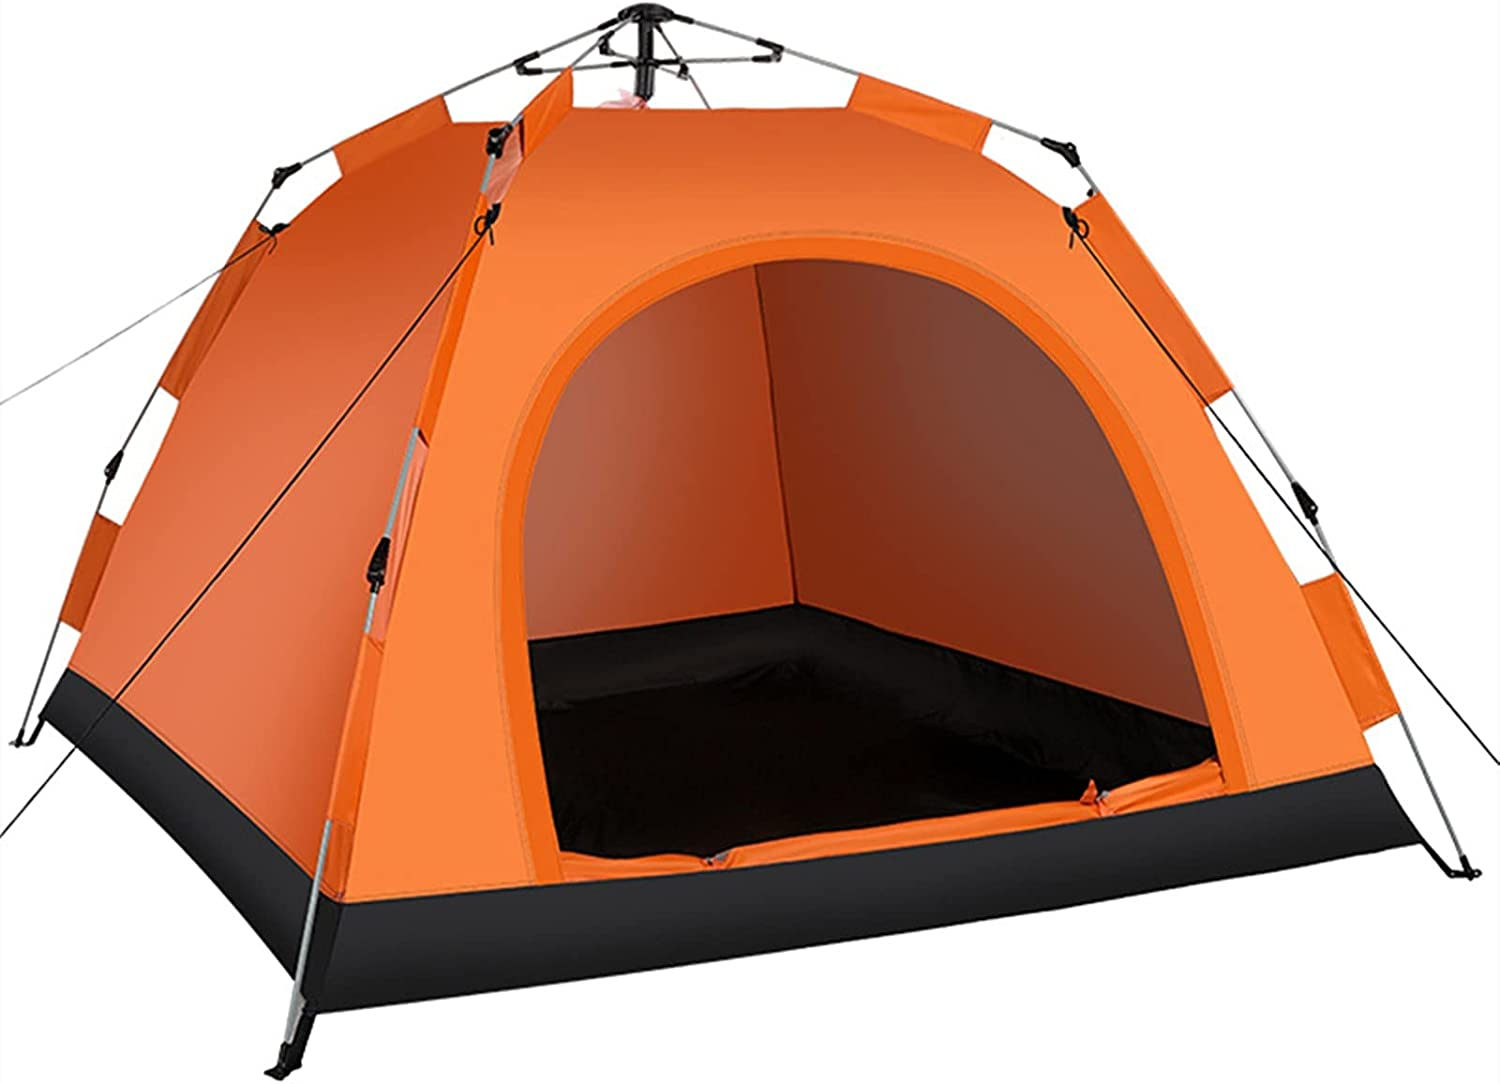 Camping Tent Rapid Ranking TOP15 rise Outdoor Pop Up 3-4 Waterproof UV Prot Person